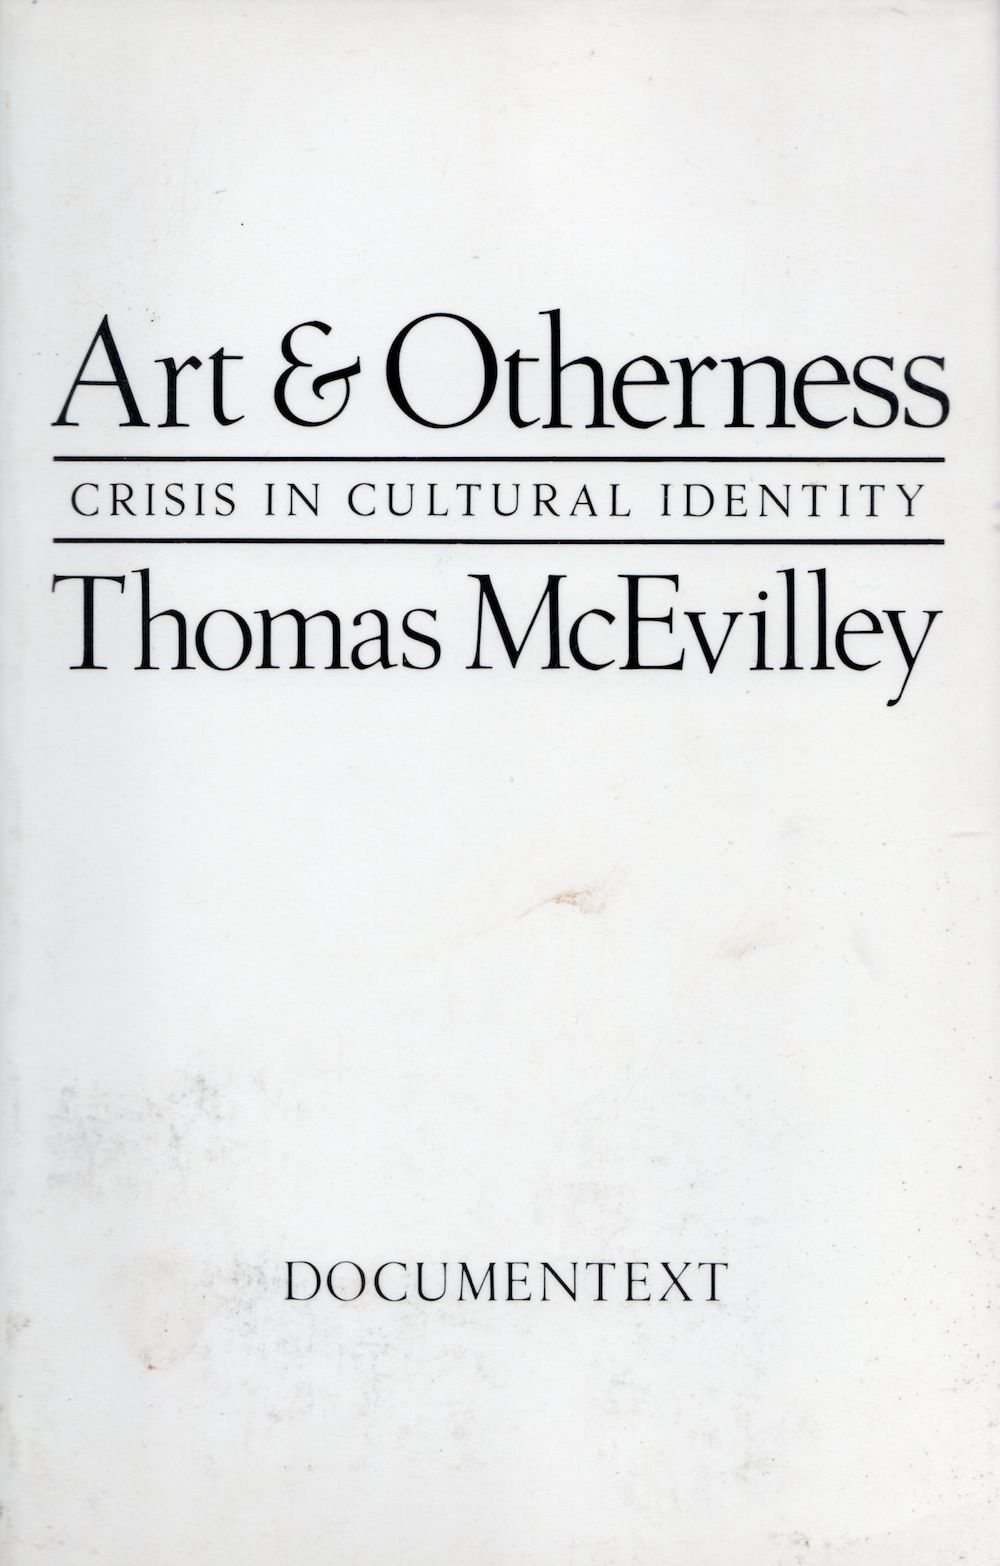 Health Care Reform Essay Art And Otherness Crisis In Cultural Identity By Thomas Mcevilley Term Paper Essay also Essay On English Subject Art And Otherness Crisis In Cultural Identity By Thomas Mcevilley  Essays In Science